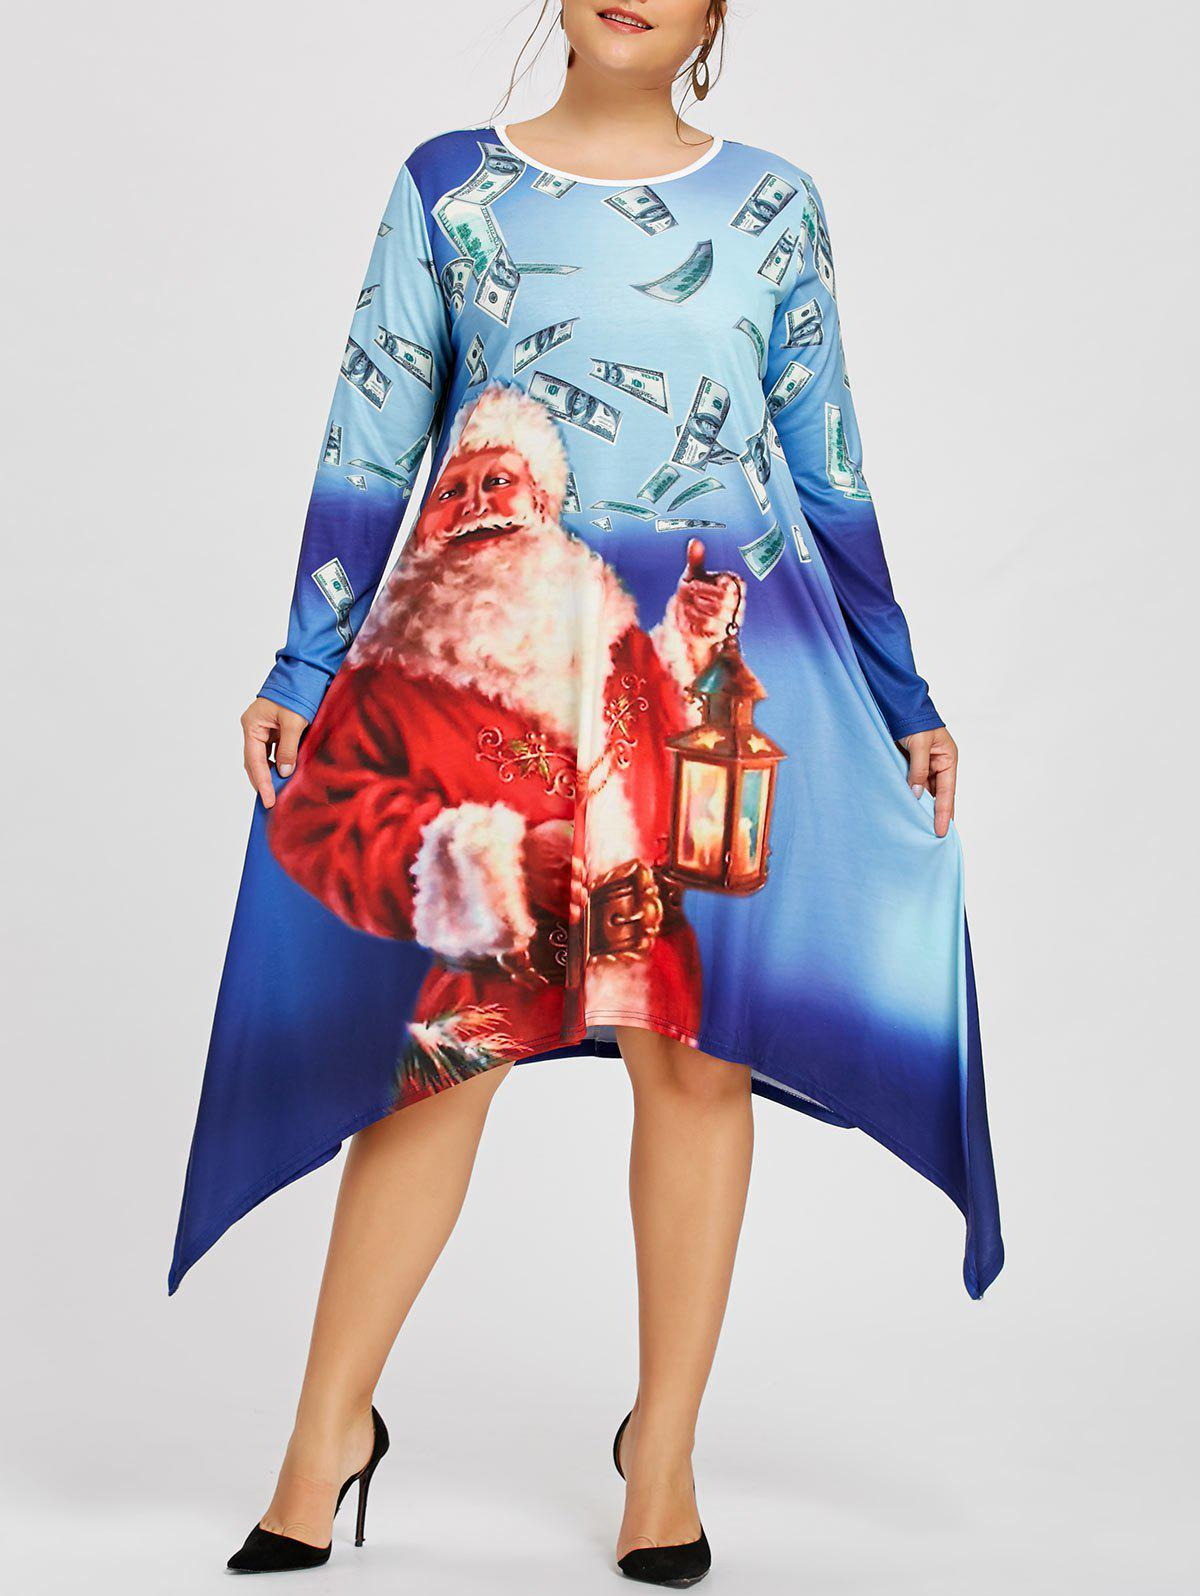 Christmas Plus Size Santa Claus Crescent Hem Tee DressWOMEN<br><br>Size: 3XL; Color: BLUE; Style: Casual; Material: Polyester,Spandex; Silhouette: A-Line; Dresses Length: Knee-Length; Neckline: Round Collar; Sleeve Length: Long Sleeves; Pattern Type: Character; With Belt: No; Season: Fall,Spring; Weight: 0.4200kg; Package Contents: 1 x Dress;